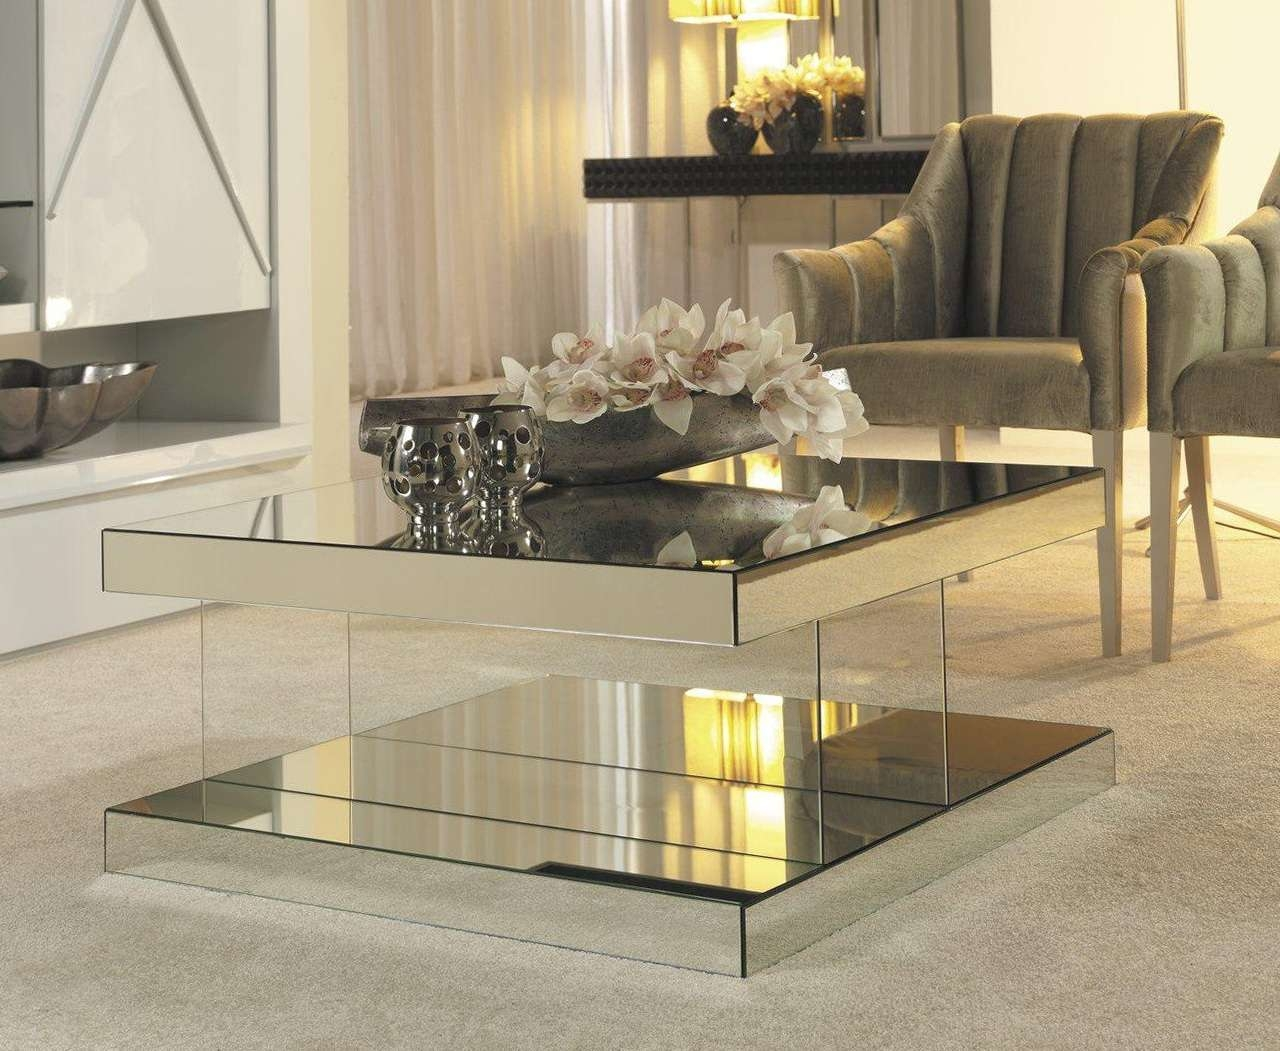 Famous Coffee Tables Mirrored With Regard To Luxury Mirrored Coffee Table — Cabinets, Beds, Sofas And (View 13 of 20)